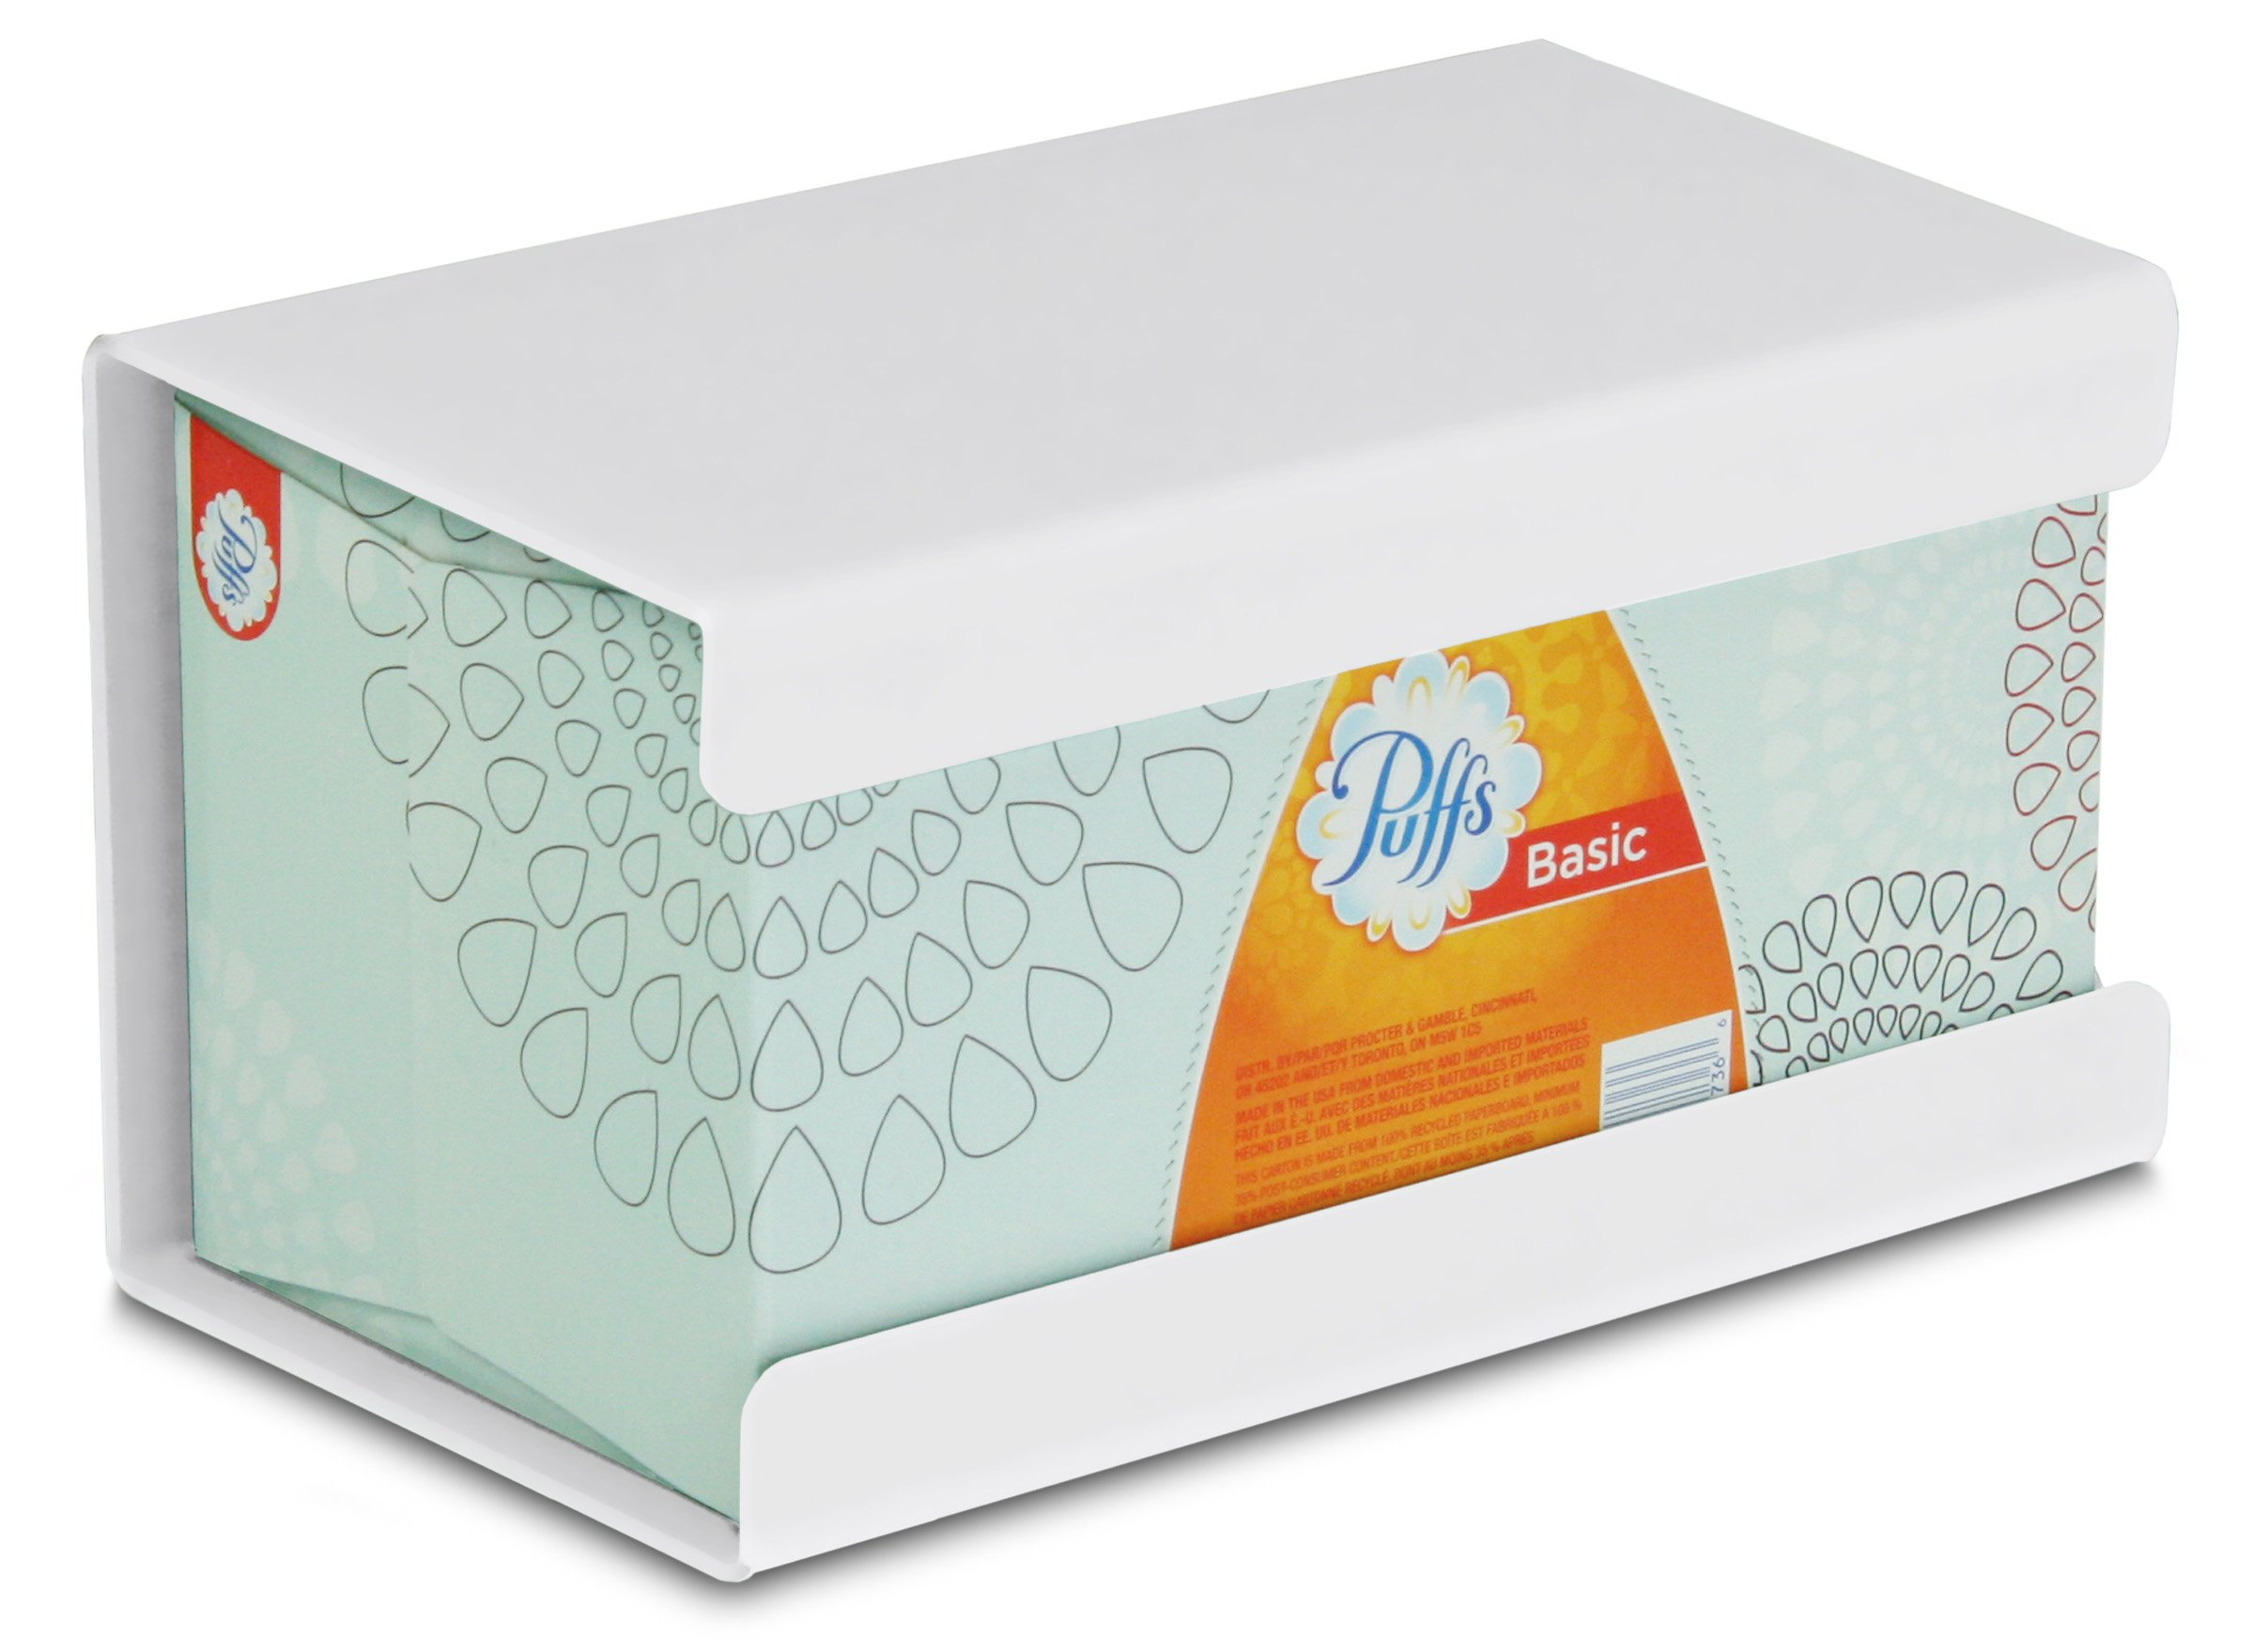 "TrippNT 50997 Plastic Wall Mountable Kleenex Box Holder, 9-1/2"" Width x 5-1/4"" Height x 5"" Depth, Large, White"